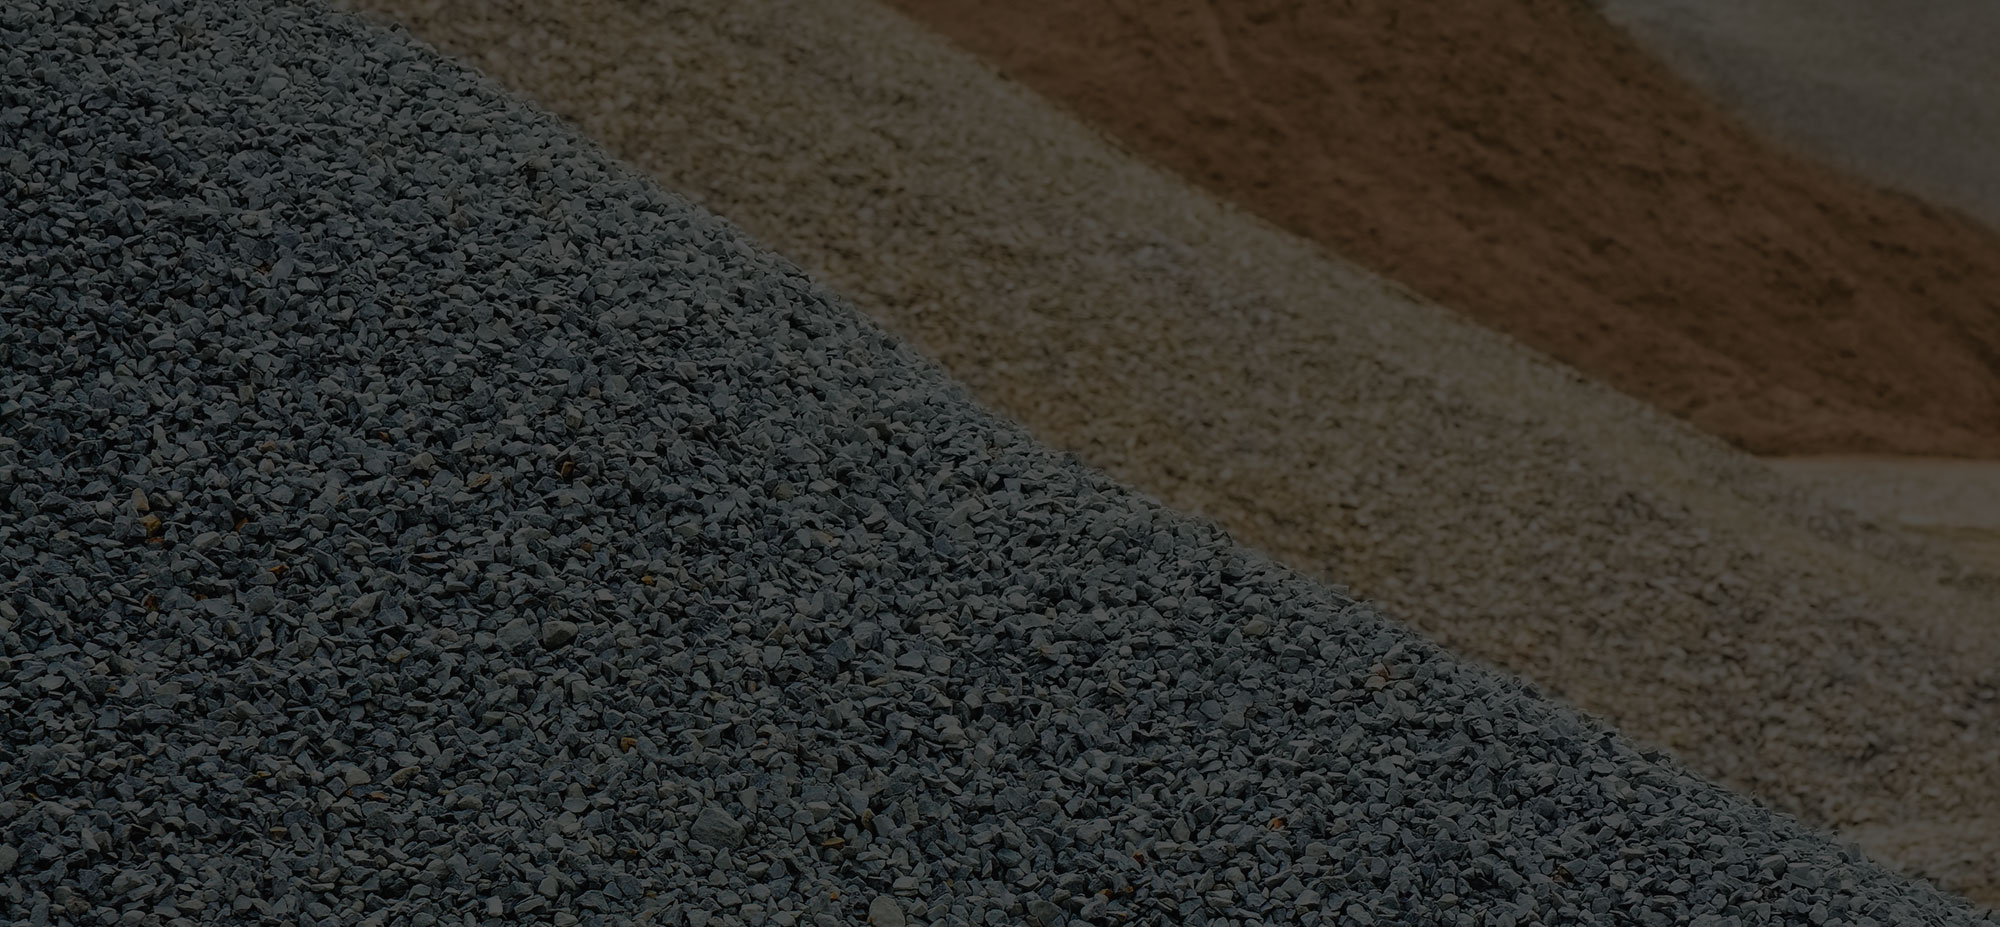 Poole Sand and Gravel sand gravel